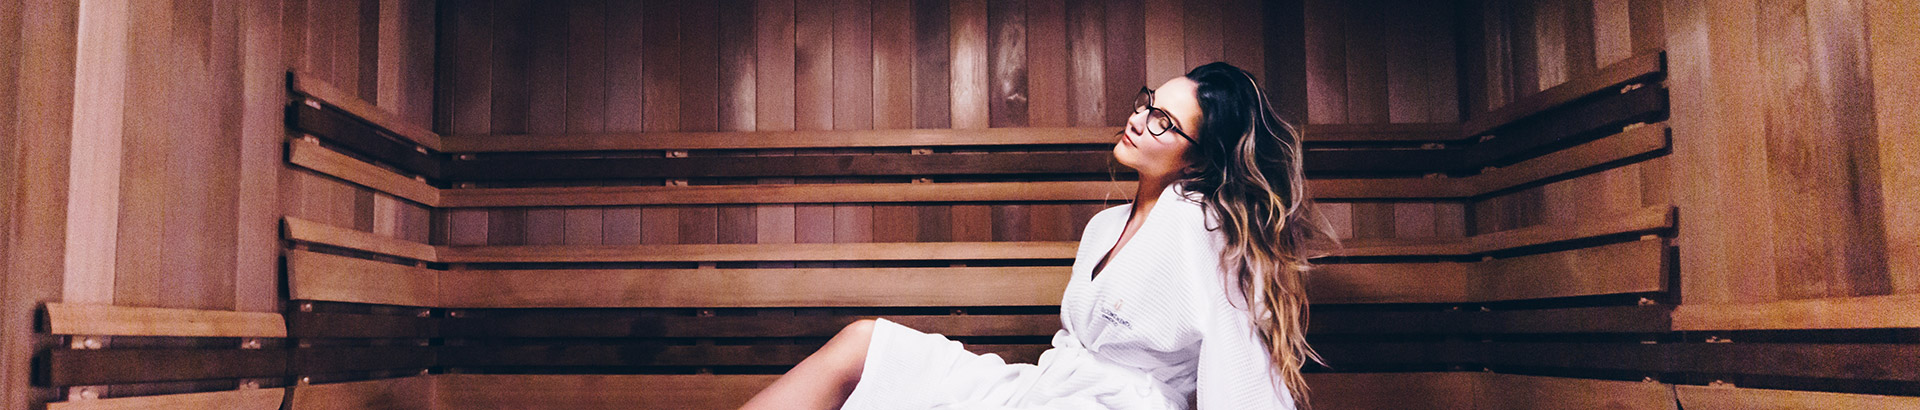 woman lounging in a sauna